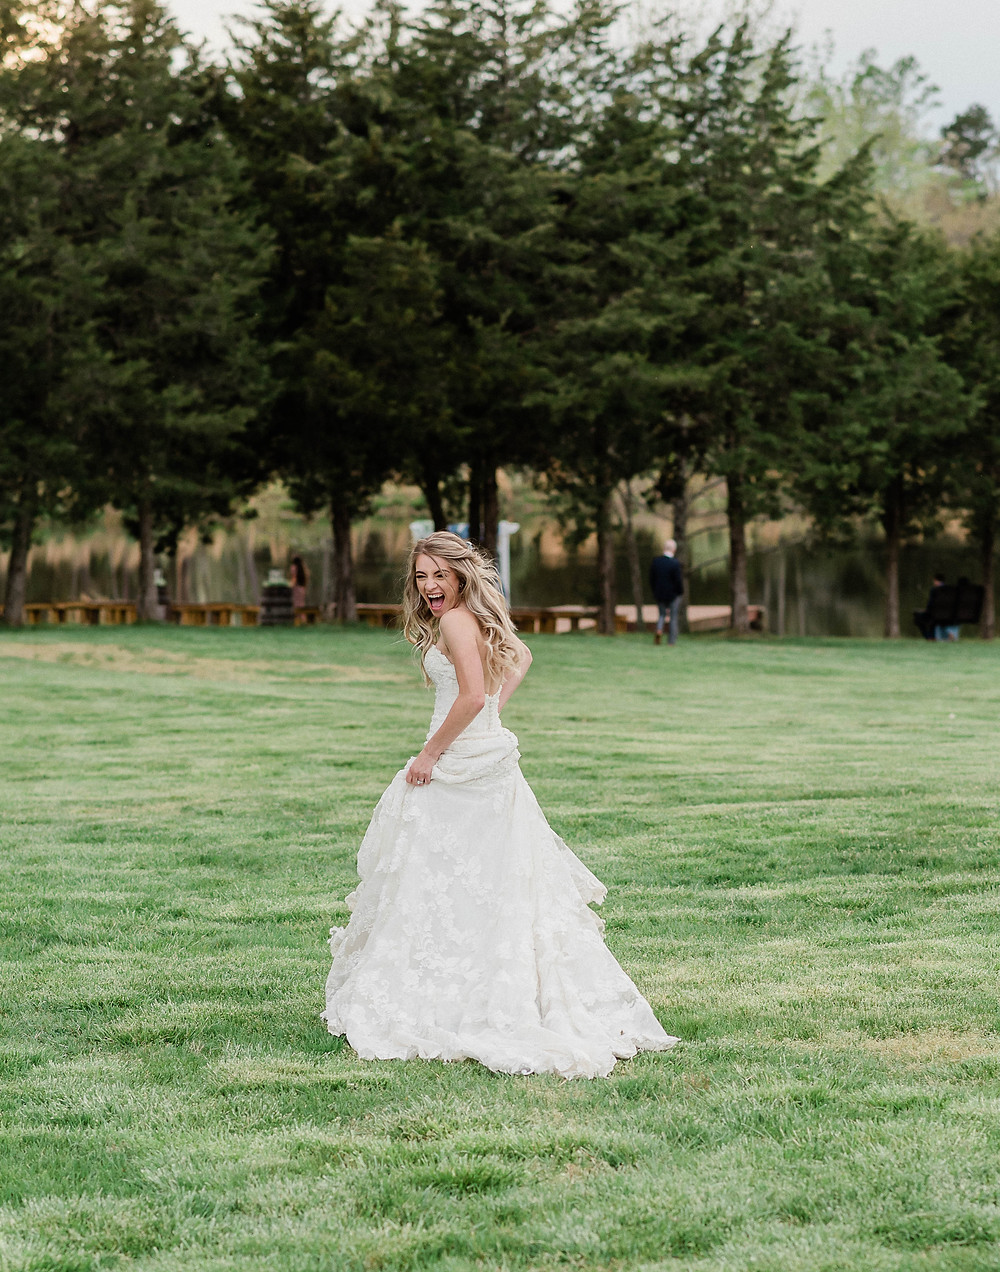 Portrait of the bride running from the camera